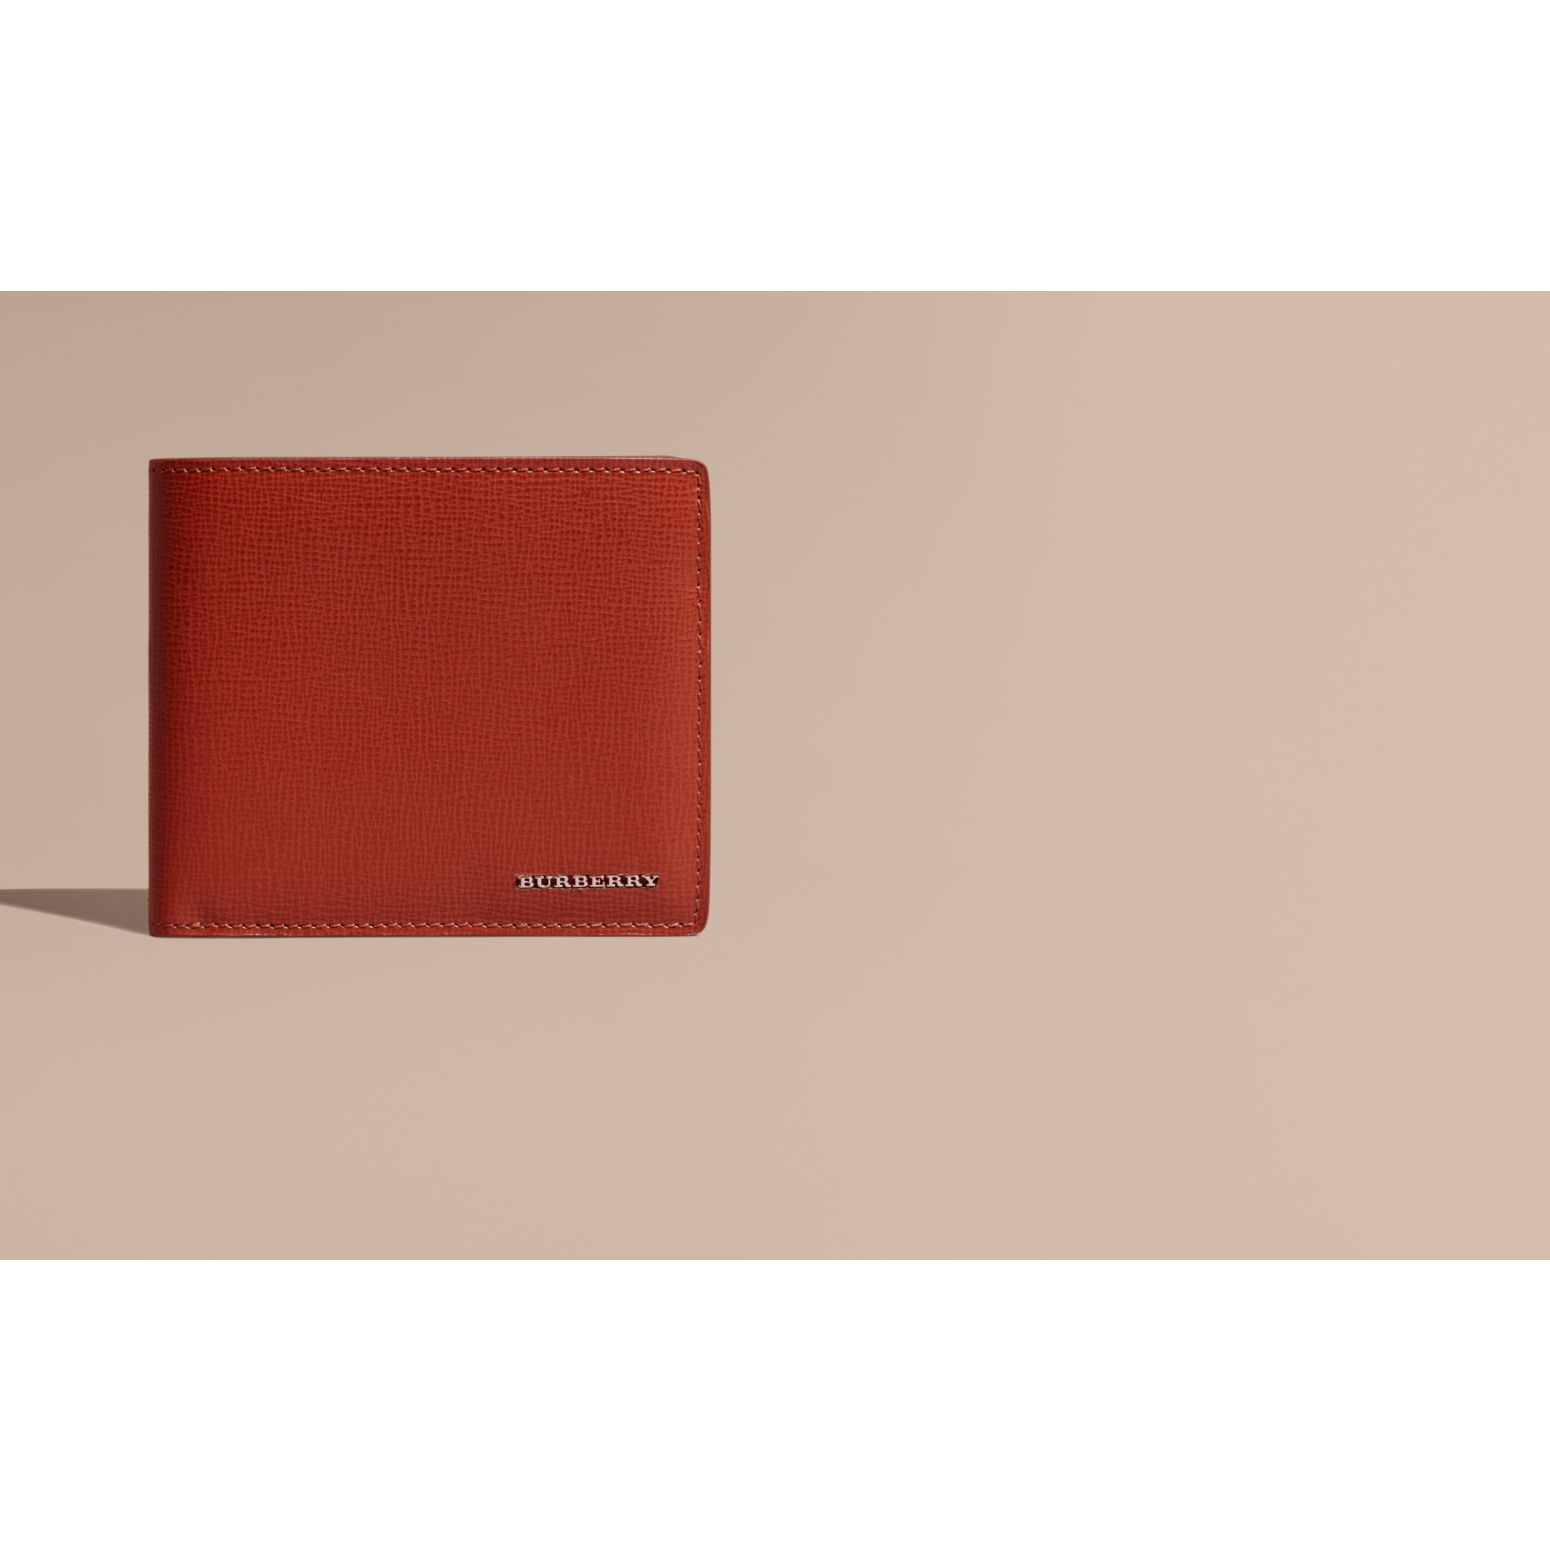 Burnt sienna London Leather Folding Wallet Burnt Sienna - gallery image 2